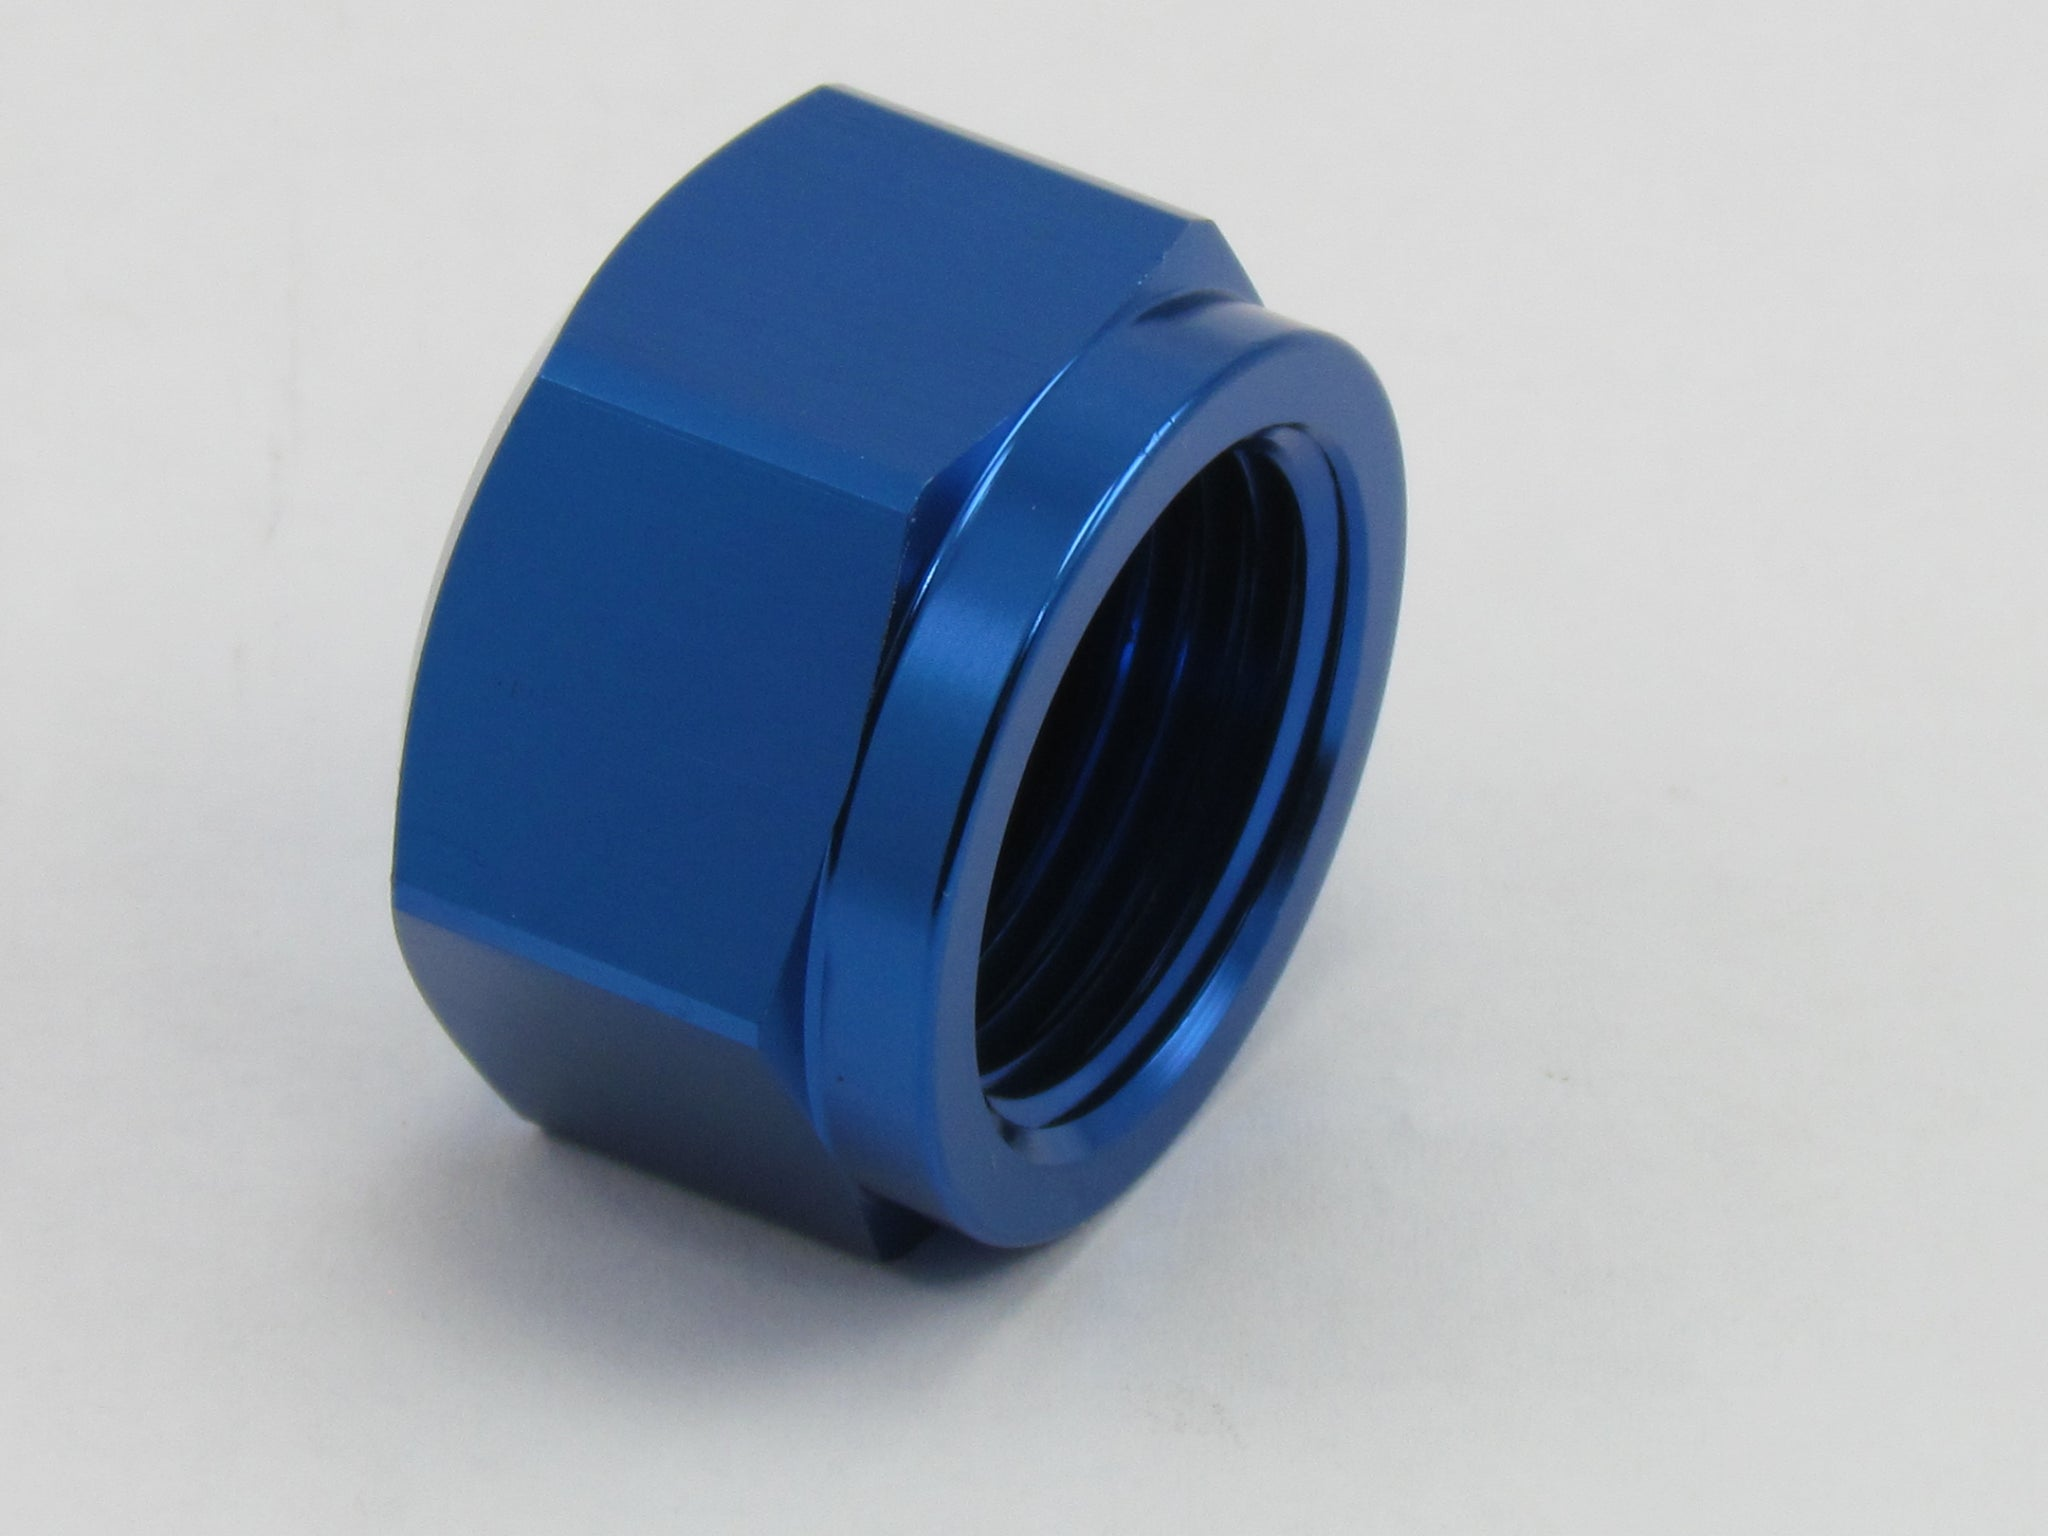 635 SERIES FEMALE AN FLARE CAP WITH O-RING ADAPTER